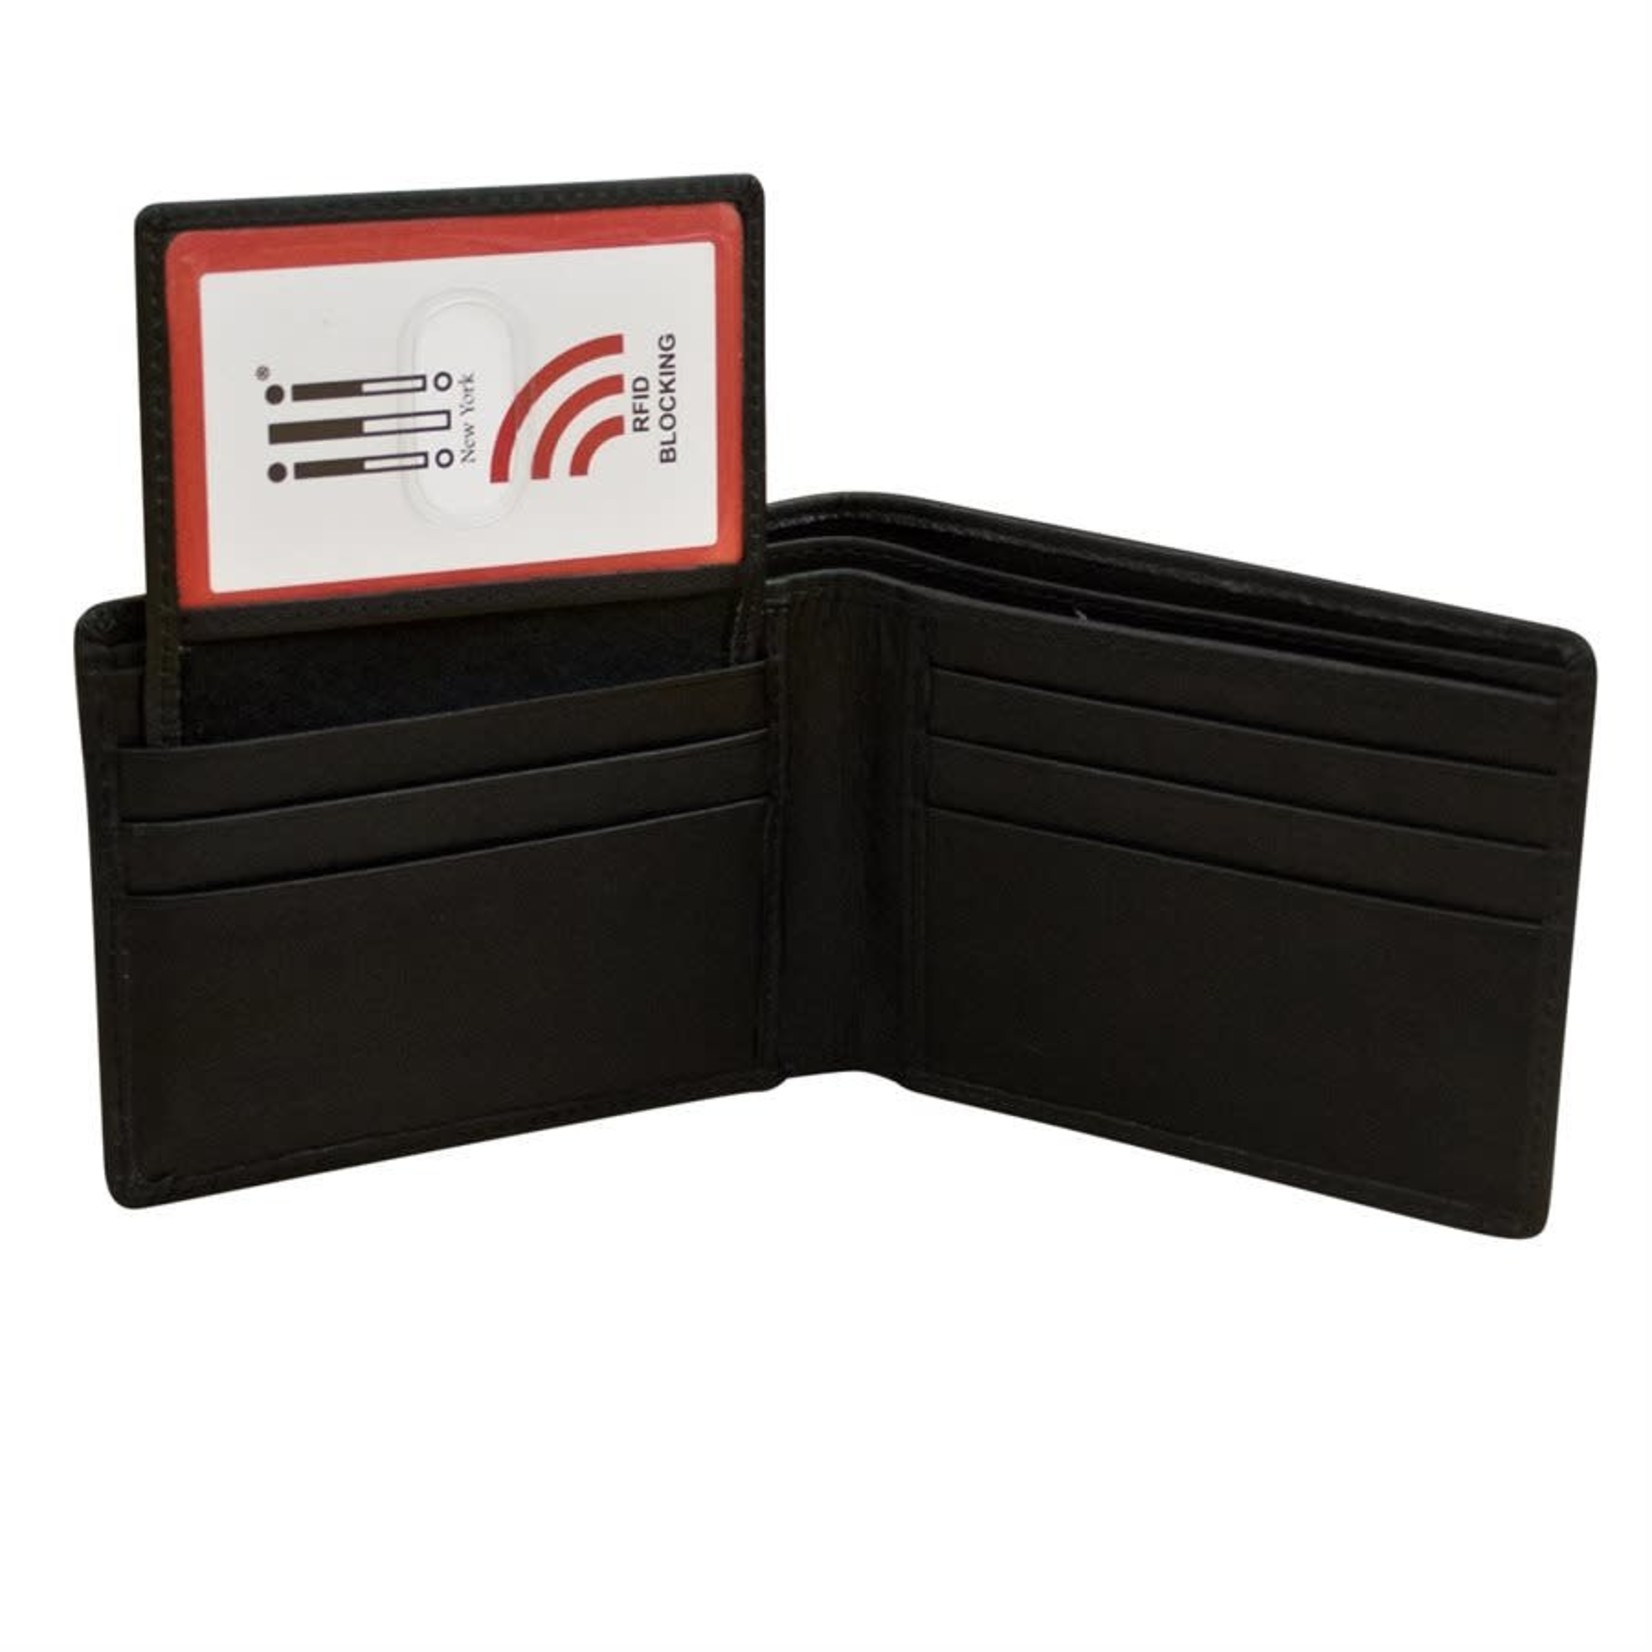 Leather Handbags and Accessories 7150 Black - RFID BiFold Wallet